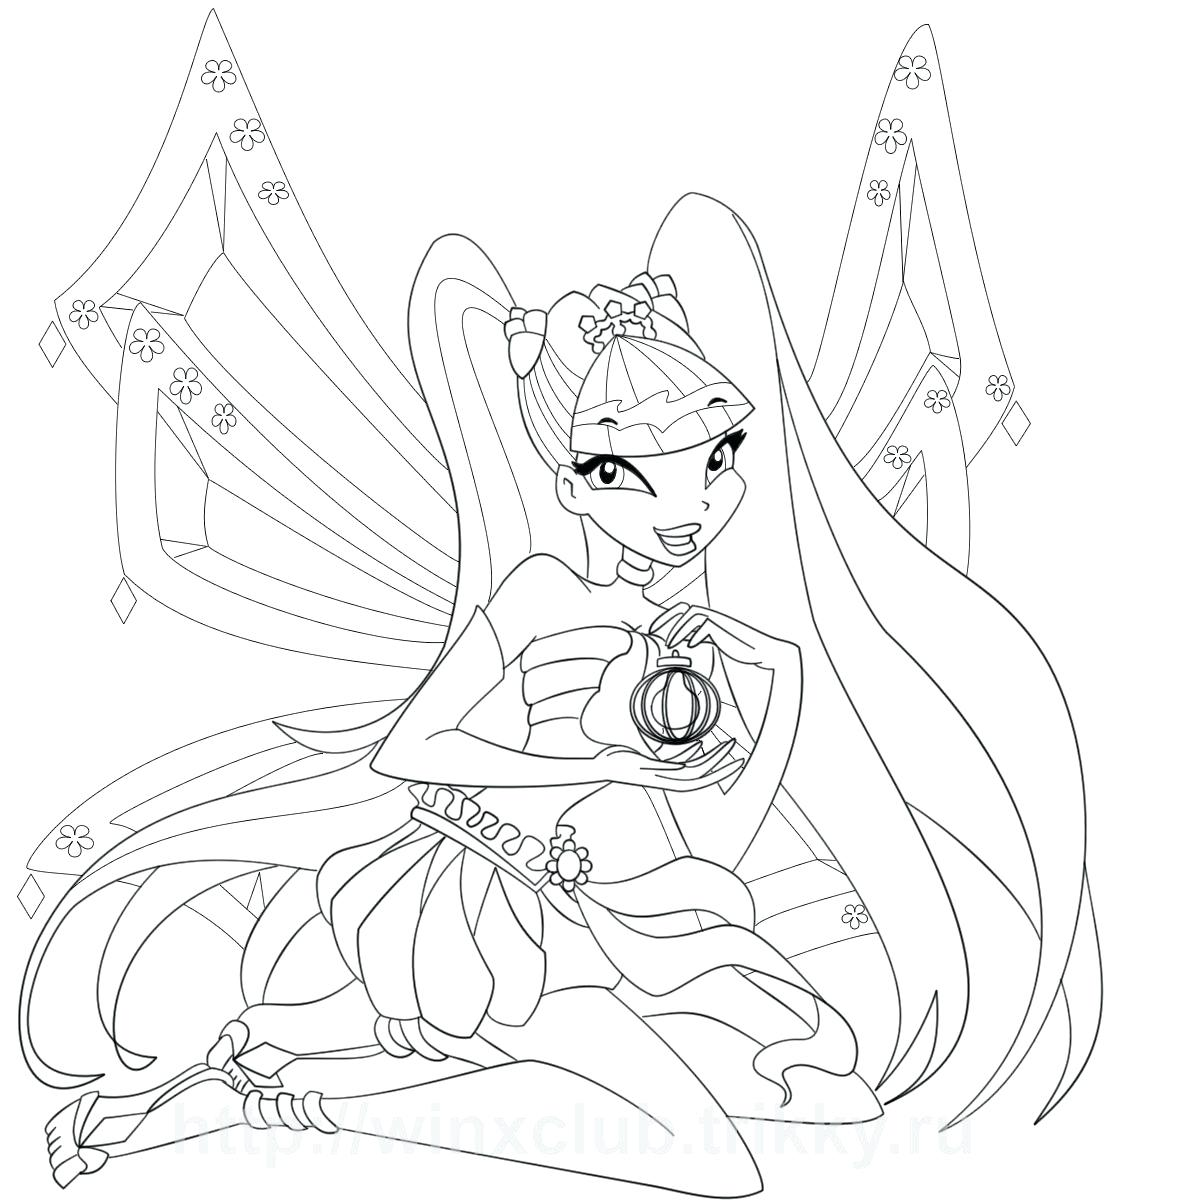 Winx Club Flora Drawing at GetDrawings.com | Free for personal use ...